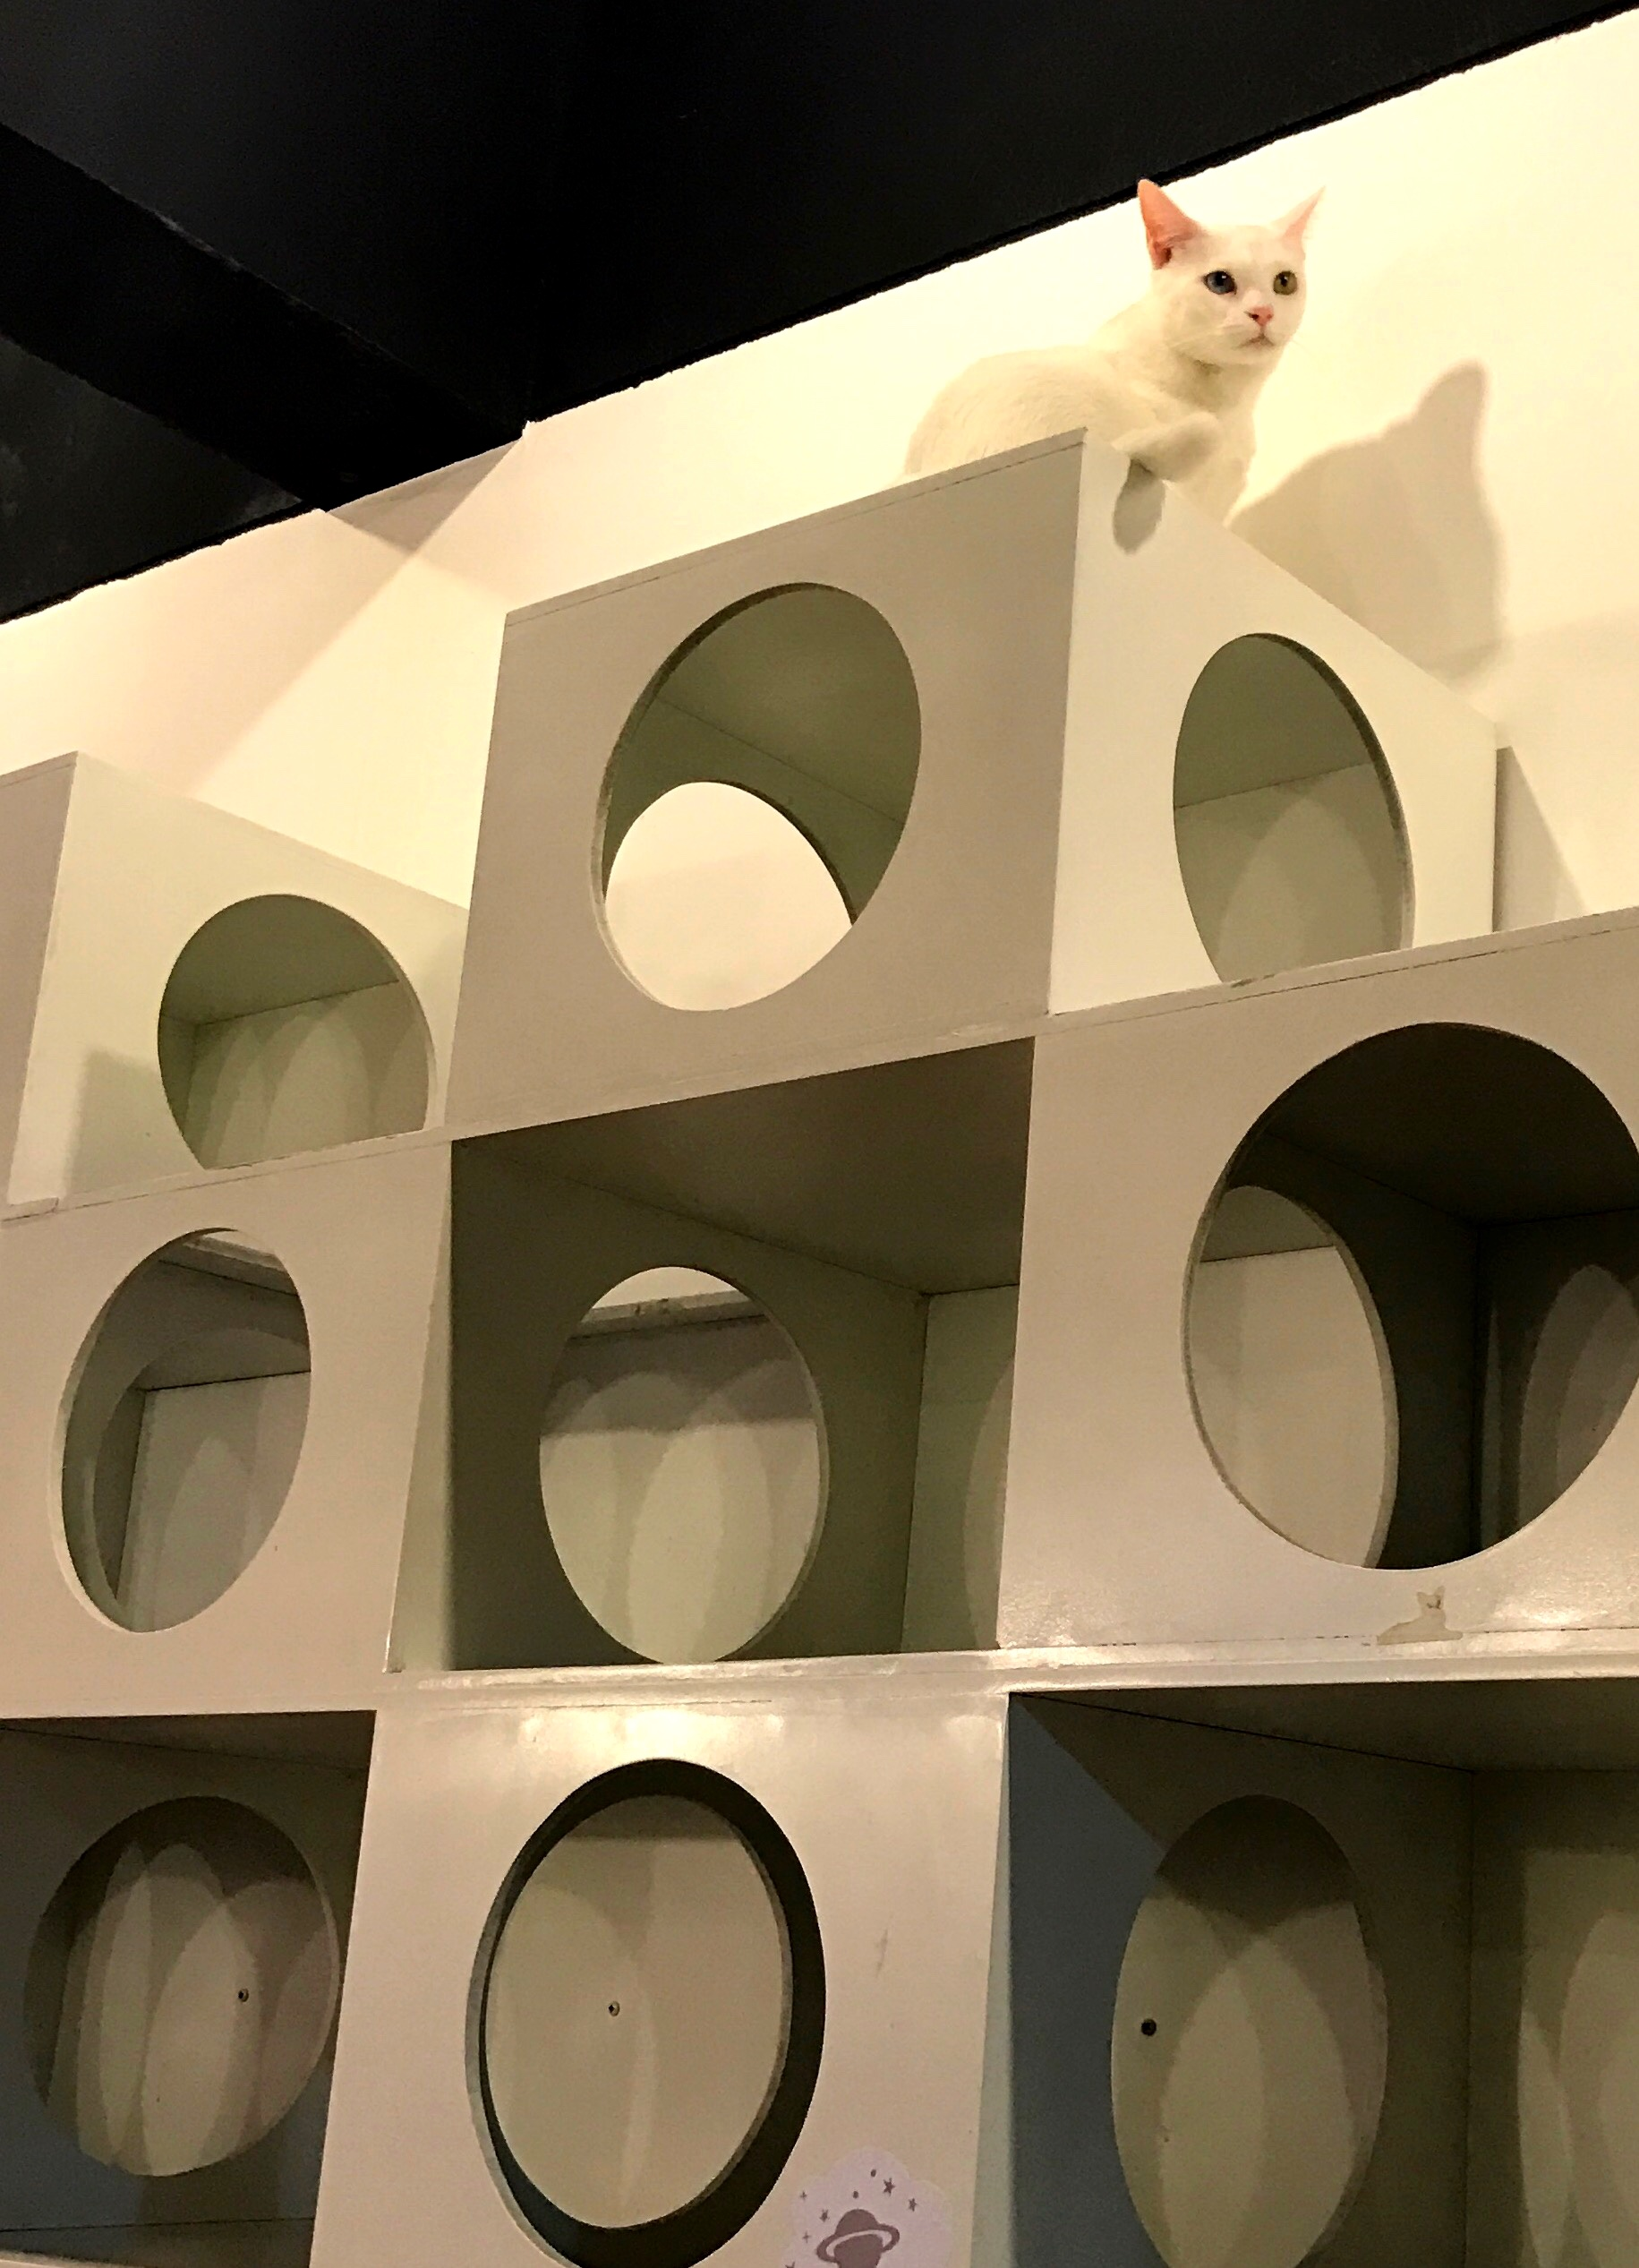 Elsa rules over her domain, a wall of cubby holes